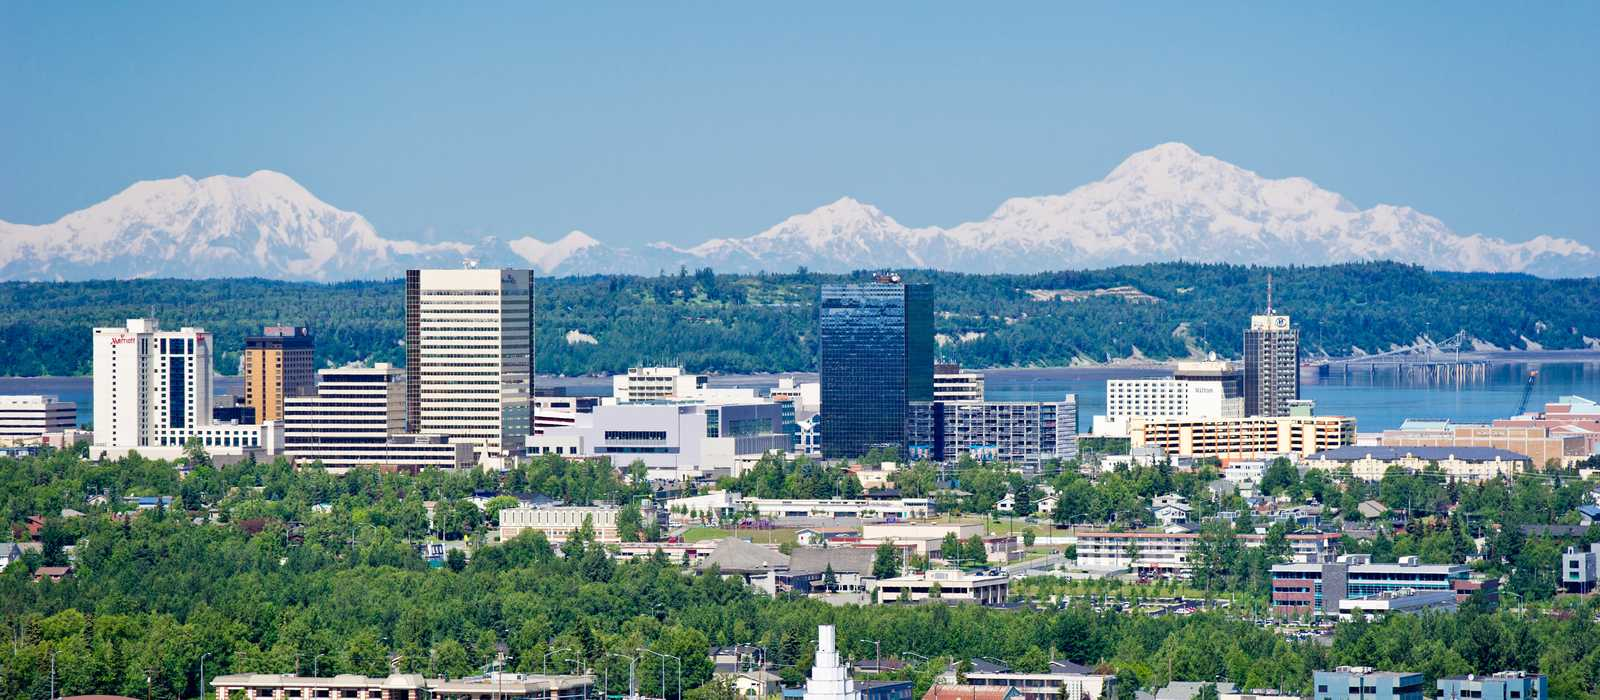 Skyline von Anchorage